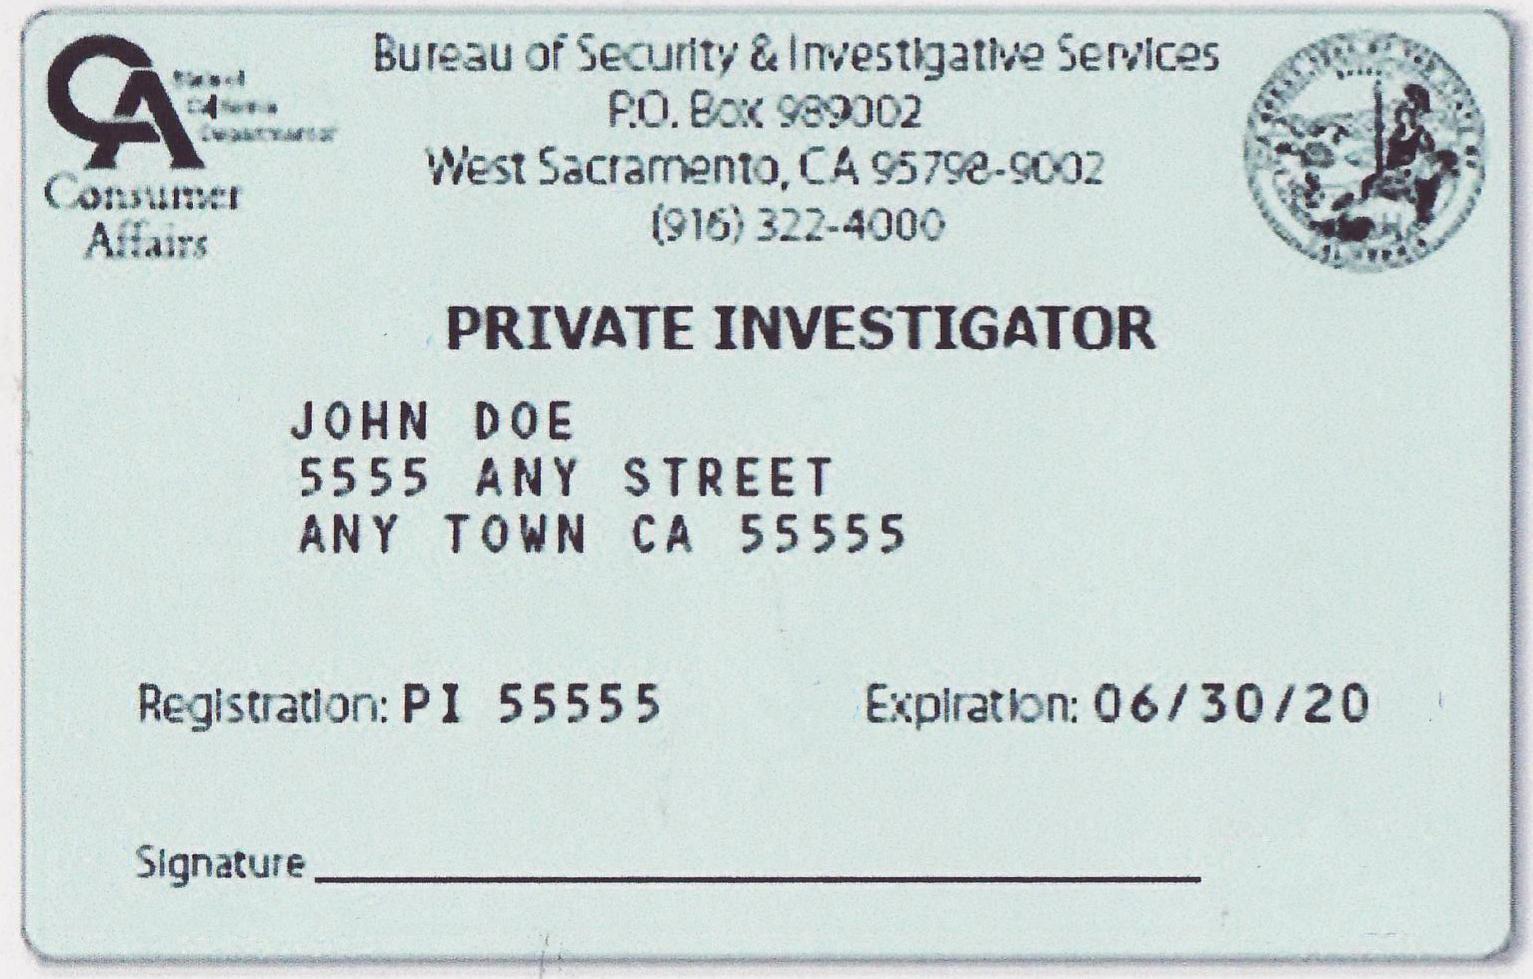 practice test for california private investigator license at www.thePIgroup.com